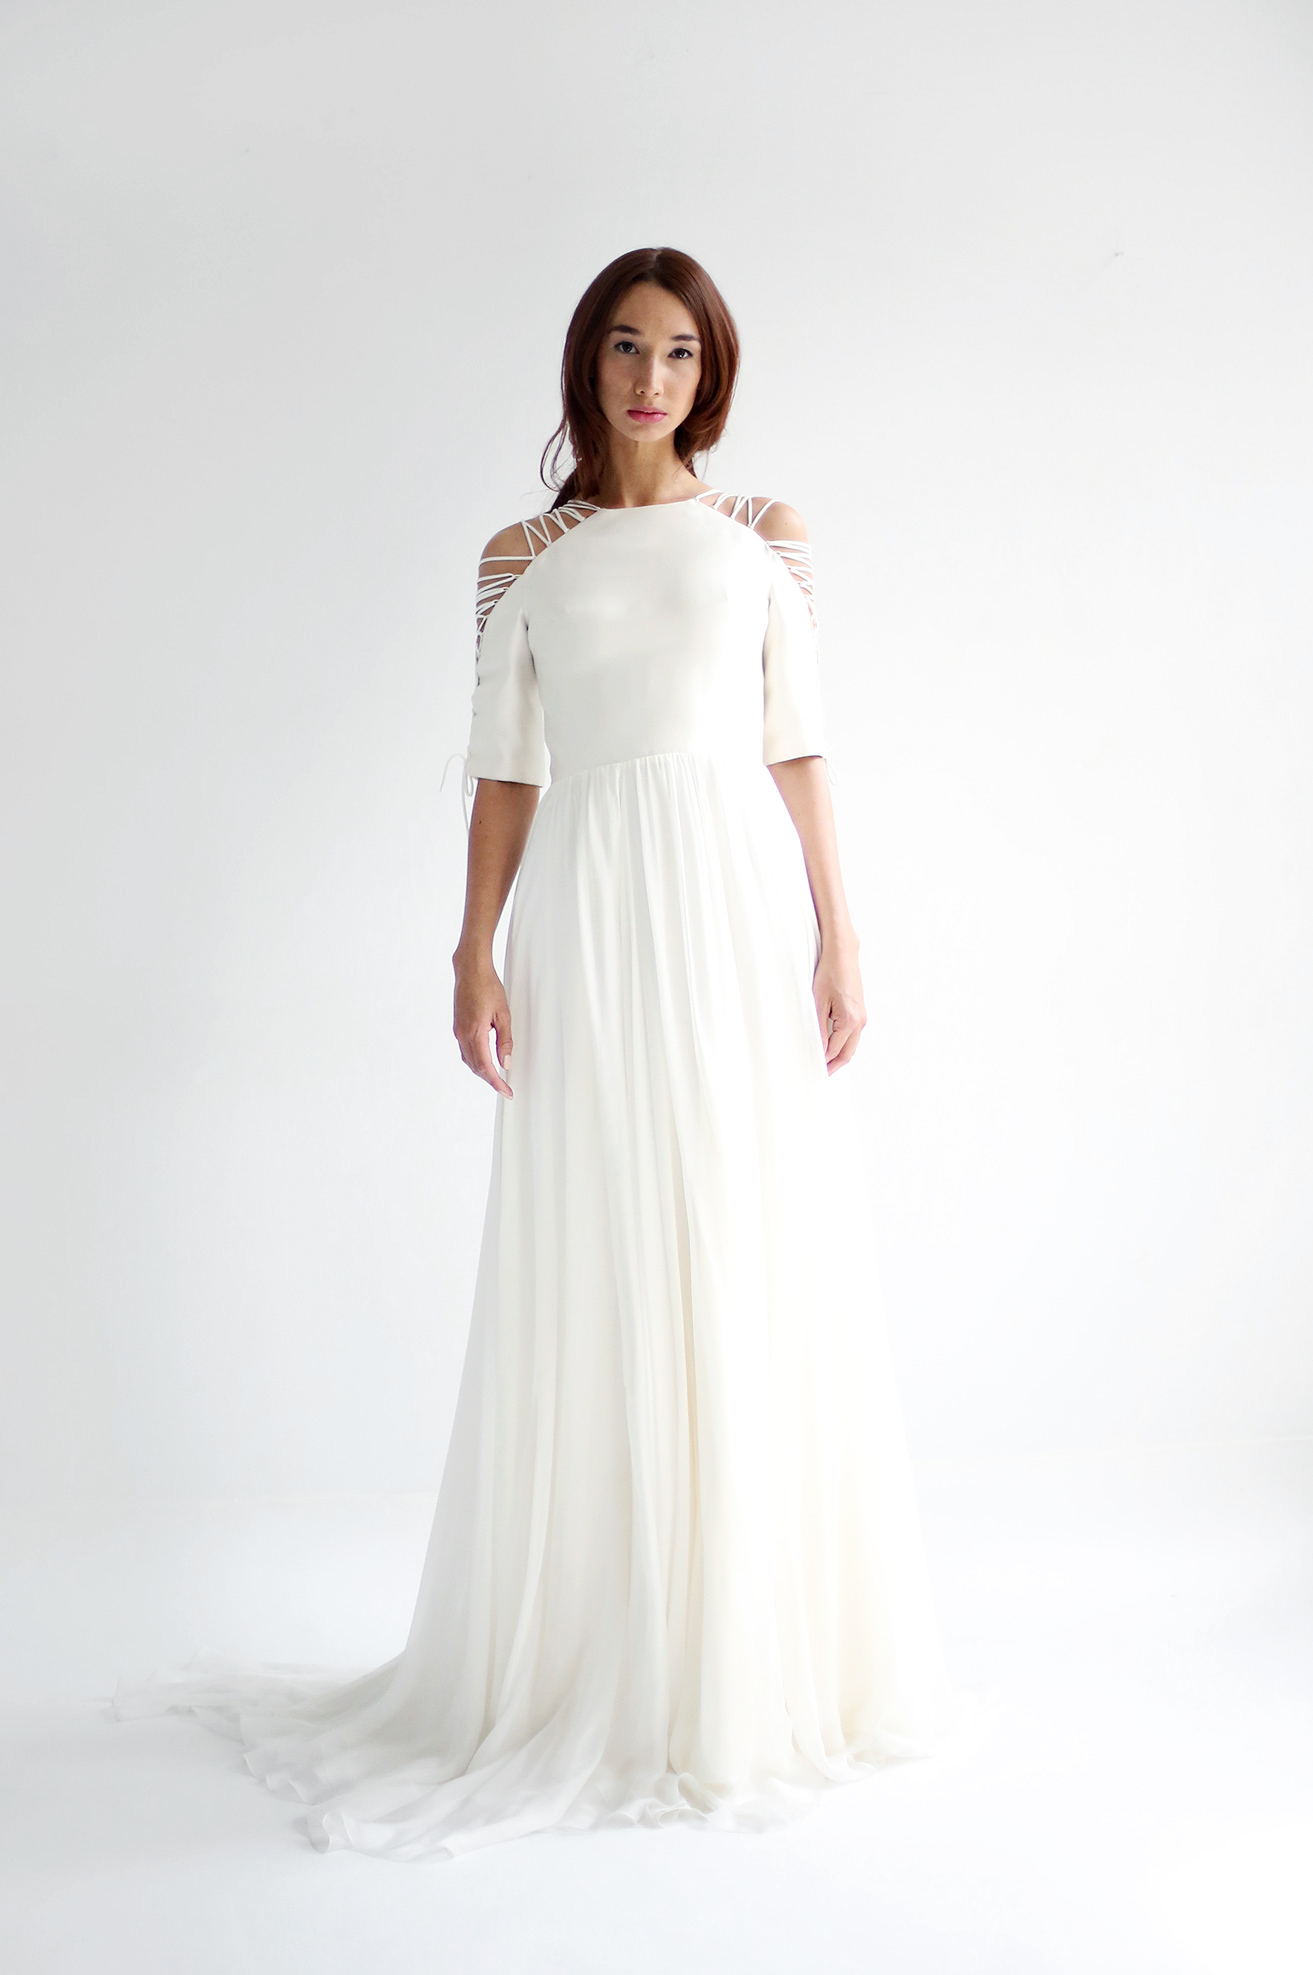 leanne marshall wedding dress spring 2019 elbow length sleeves cut out cold shoulder a-line